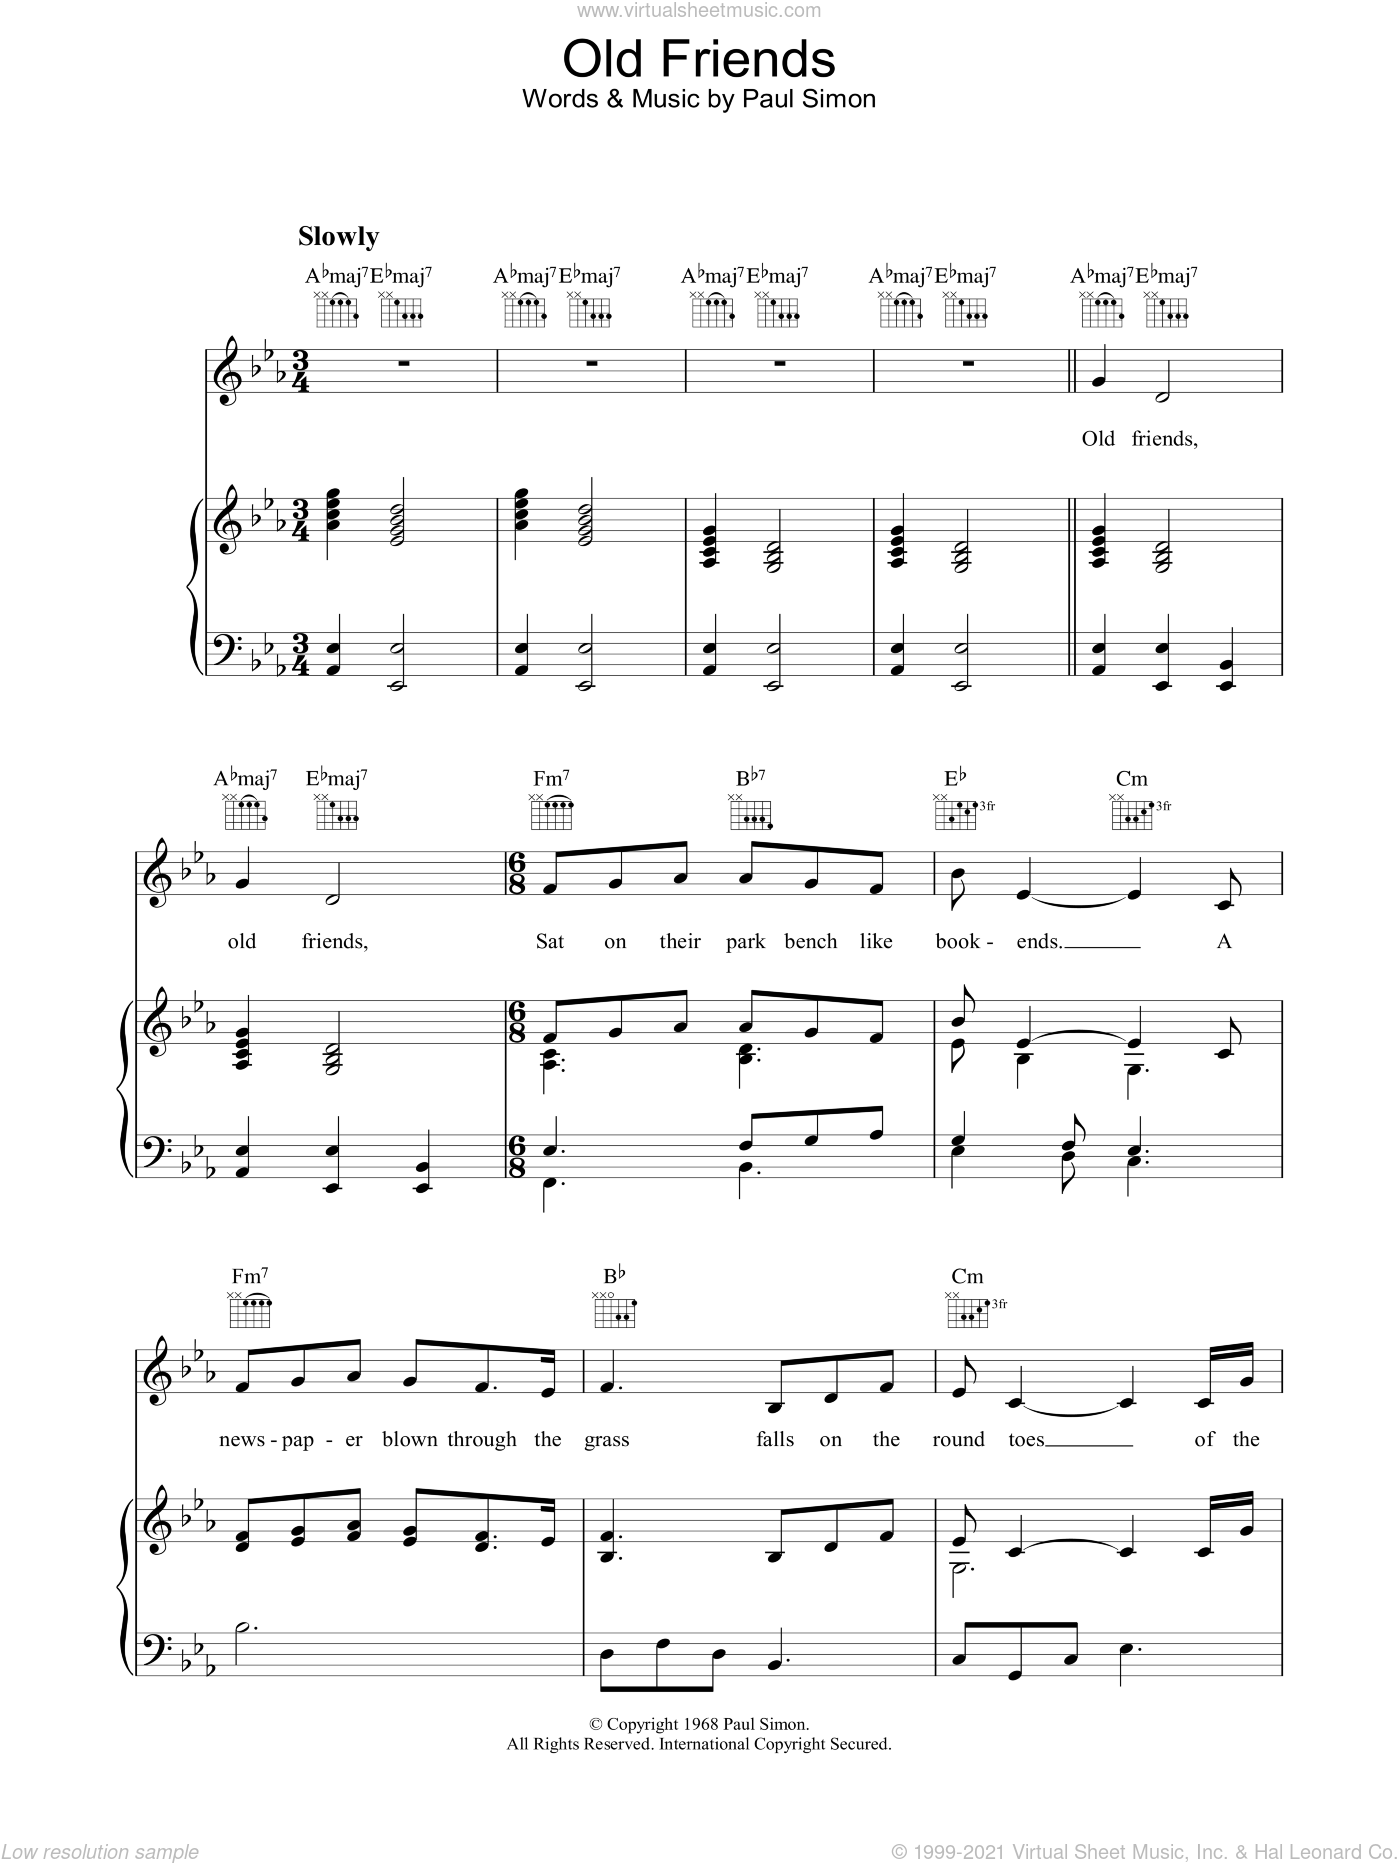 Old Friends sheet music for voice, piano or guitar by Paul Simon and Simon & Garfunkel. Score Image Preview.